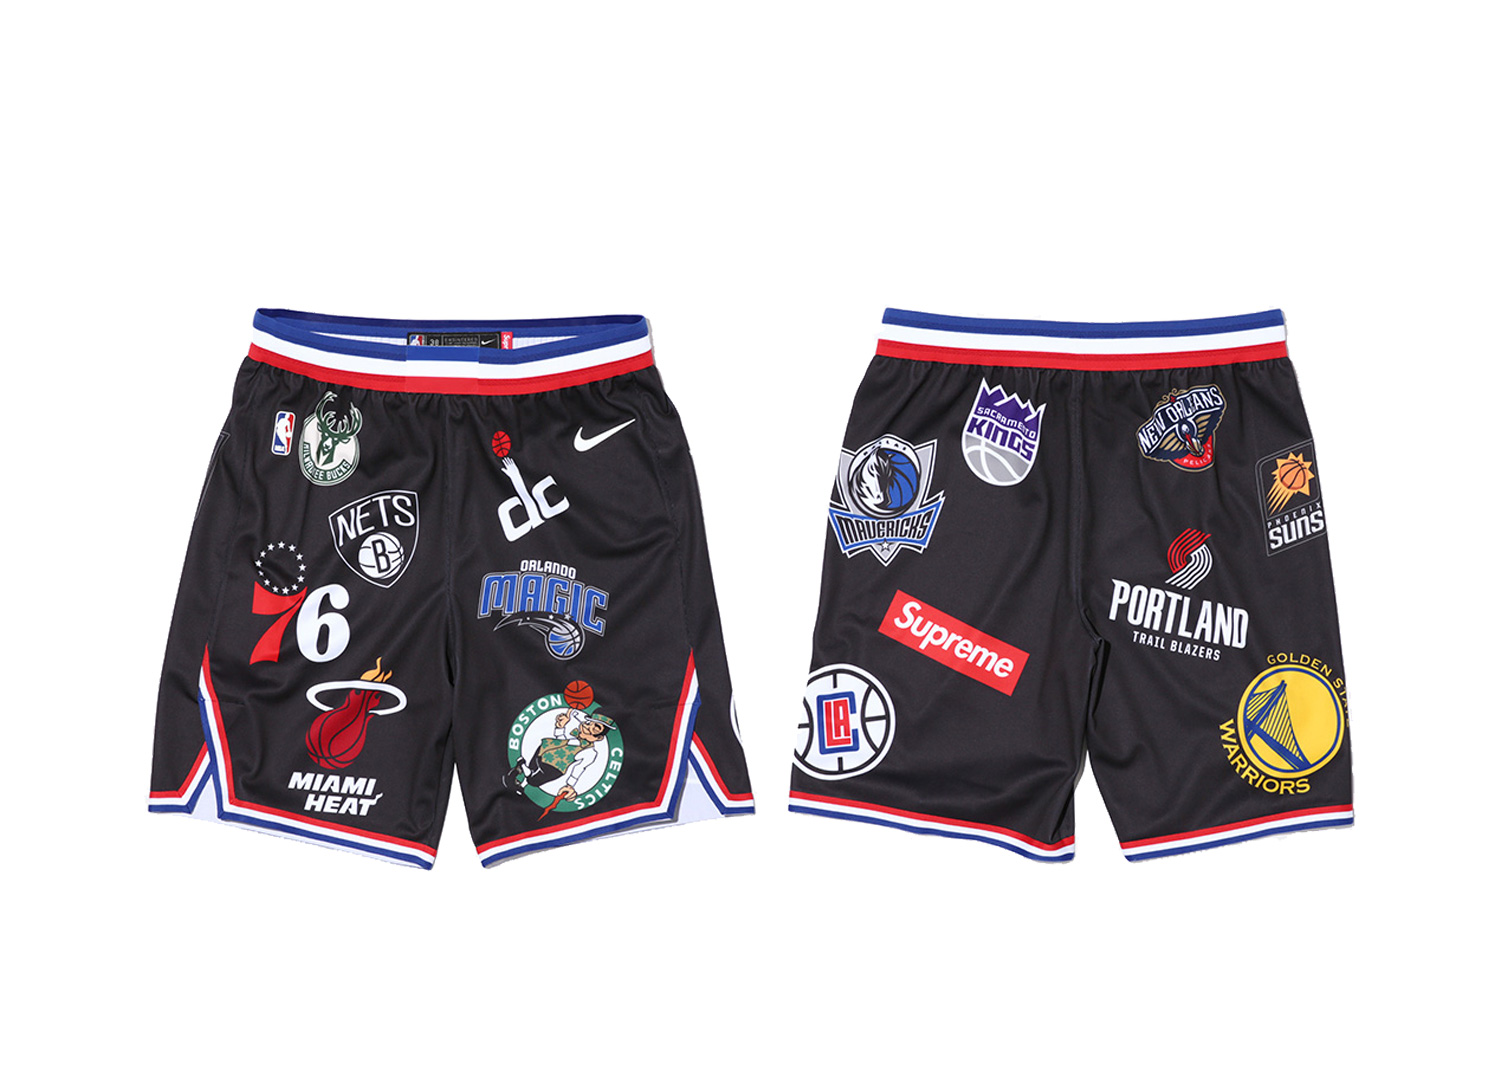 Supreme®/Nike®/NBA Shorts (Black)